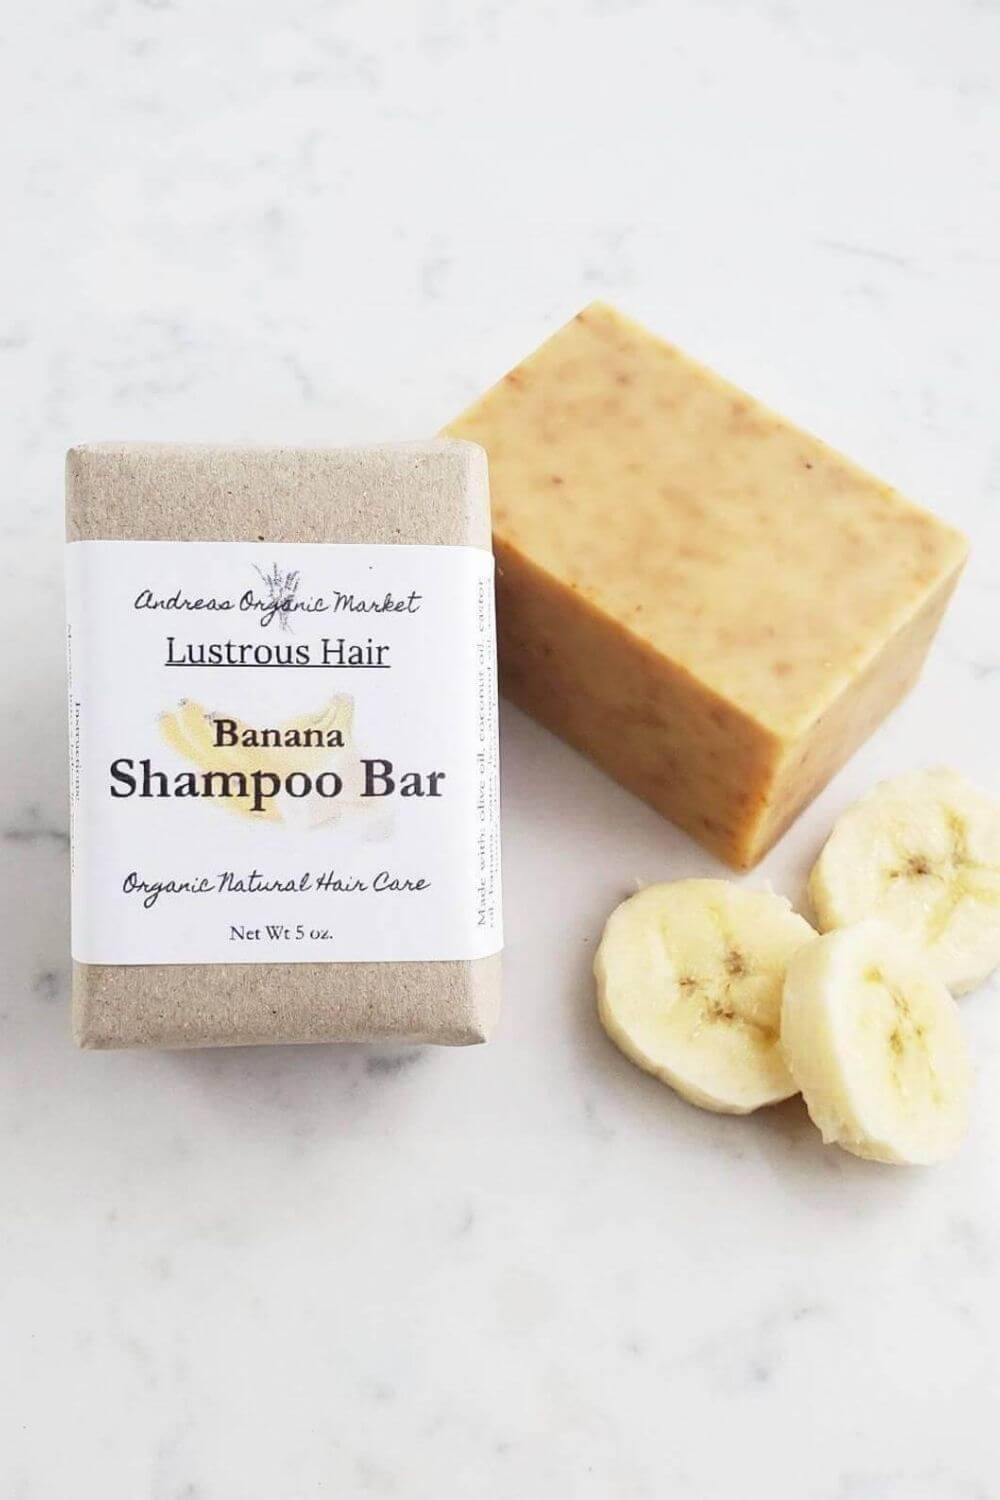 Switching to vegan and cruelty-free shampoo, conditioner, and other hair products is great but isn't enough from an environmental perspective. Thankfully, there are now many zero waste shampoo and conditioners available. Image by Andreas Organic Market #zerowasteshampoo #zerowasteconditioner #sustainablejungle